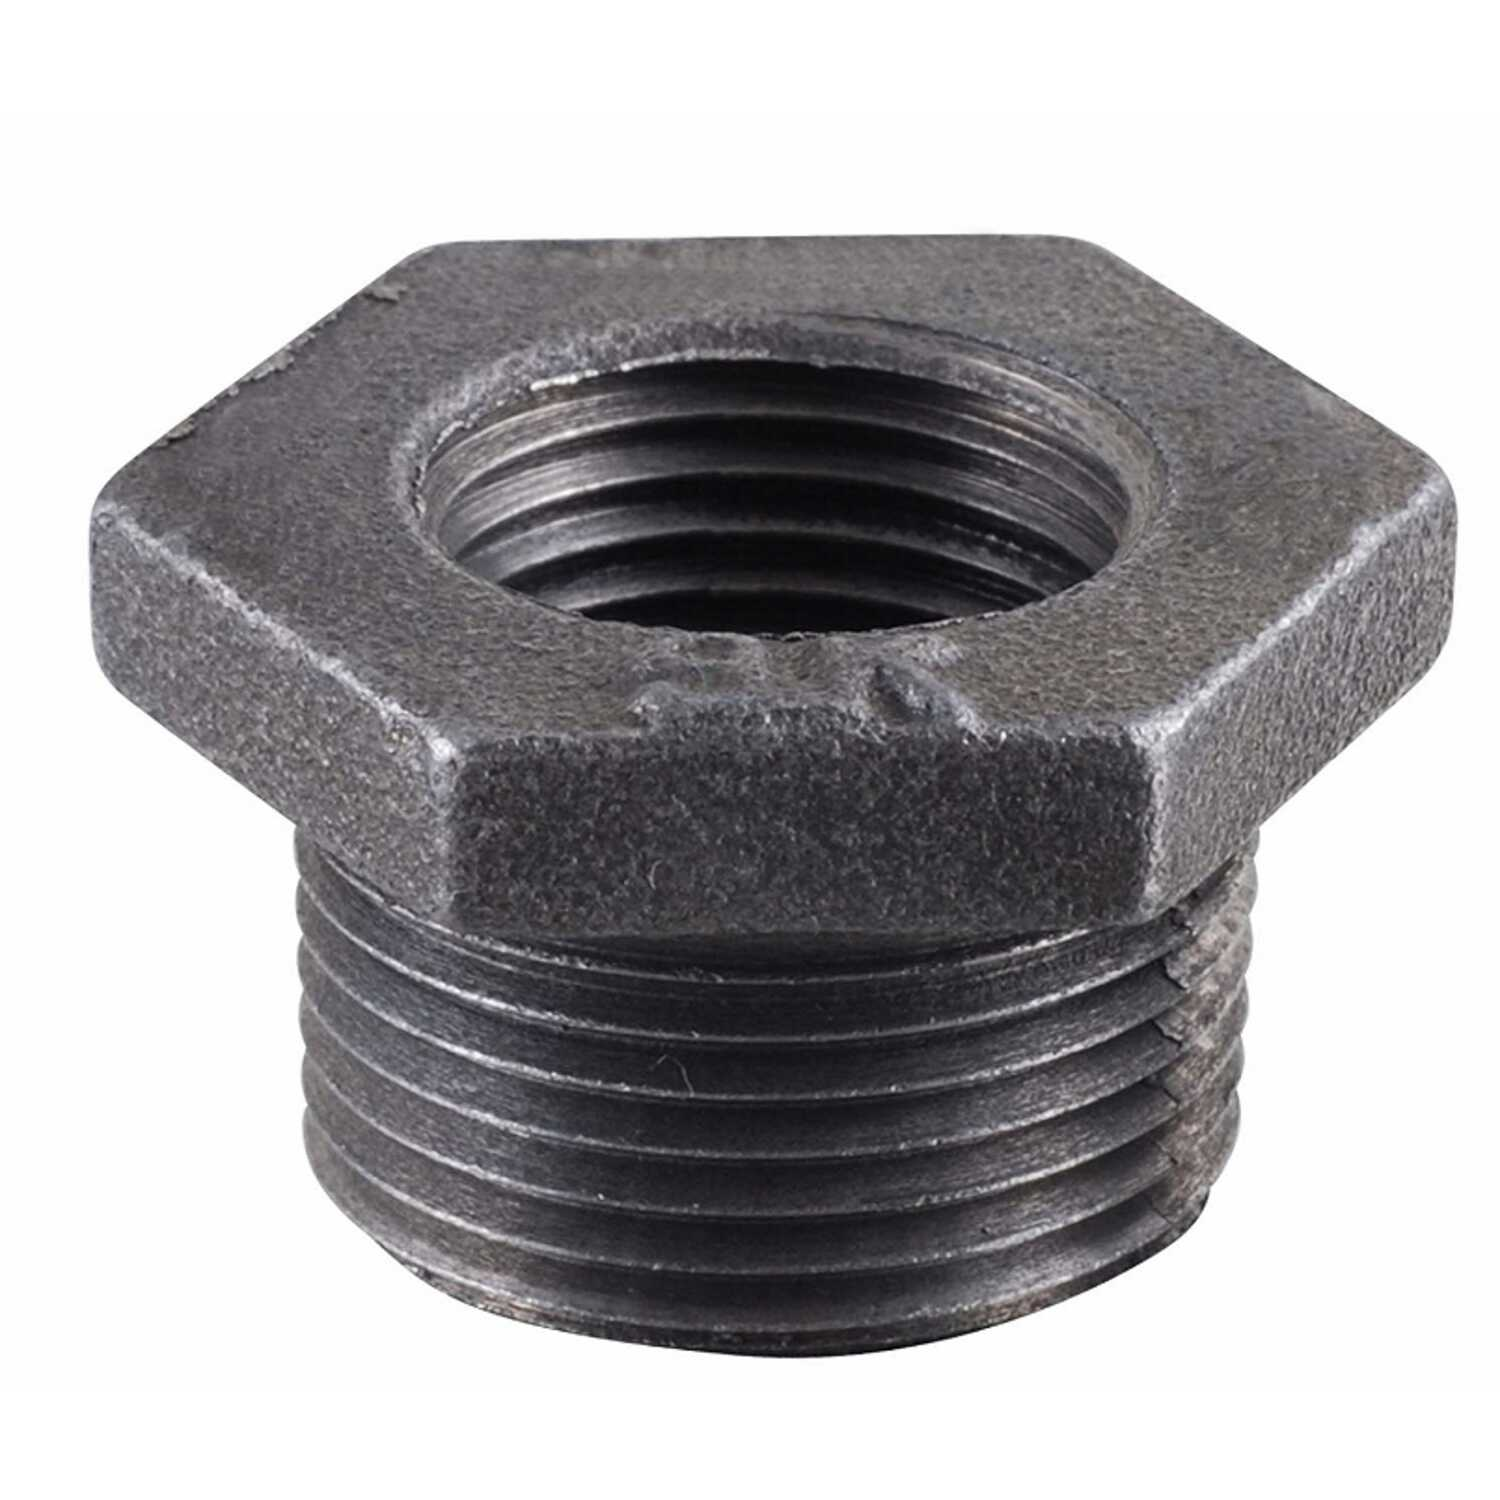 B & K  1-1/2 in. MPT   x 1-1/4 in. Dia. FPT  Black  Malleable Iron  Hex Bushing